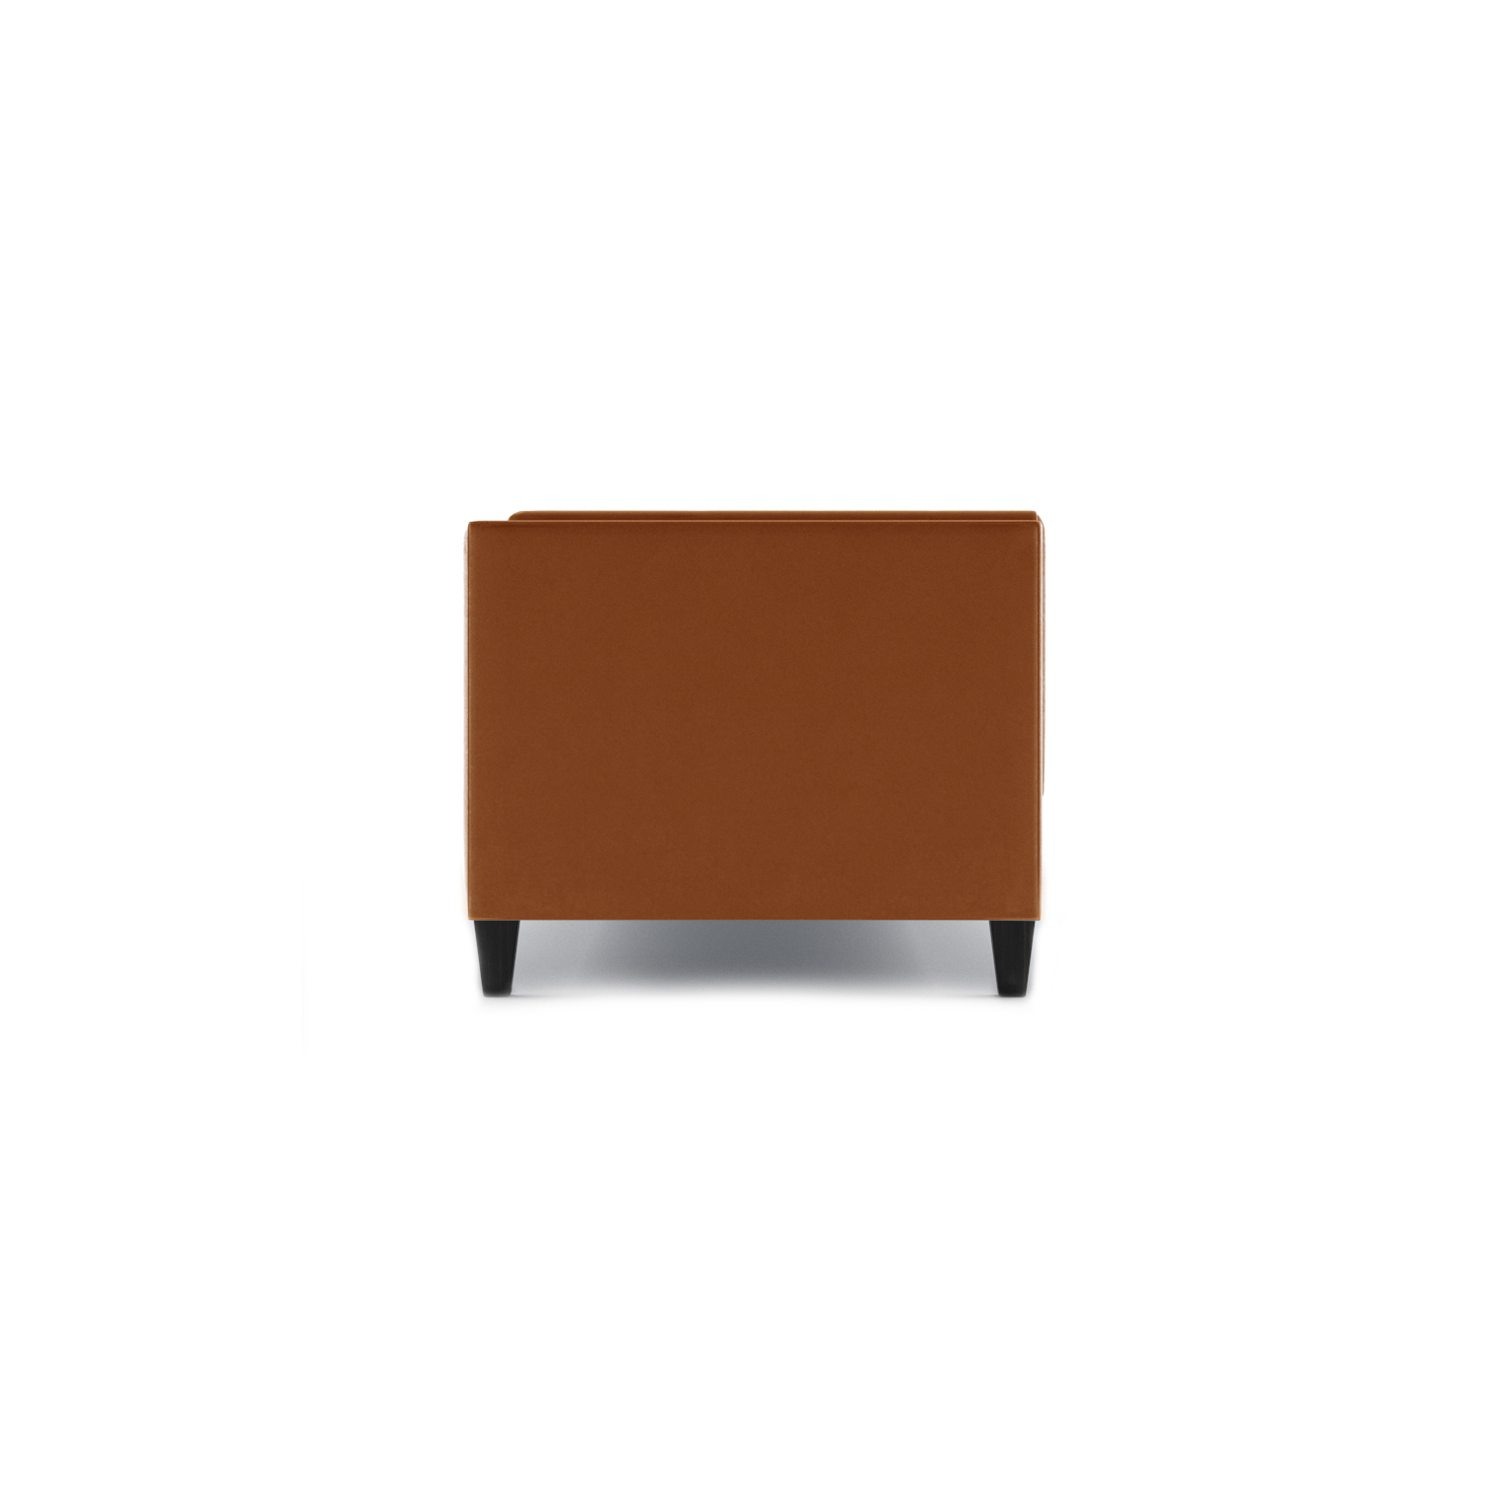 Coltrane Three and a Half Seater Sofa by Bonham & Bonham Burnt Orange 10